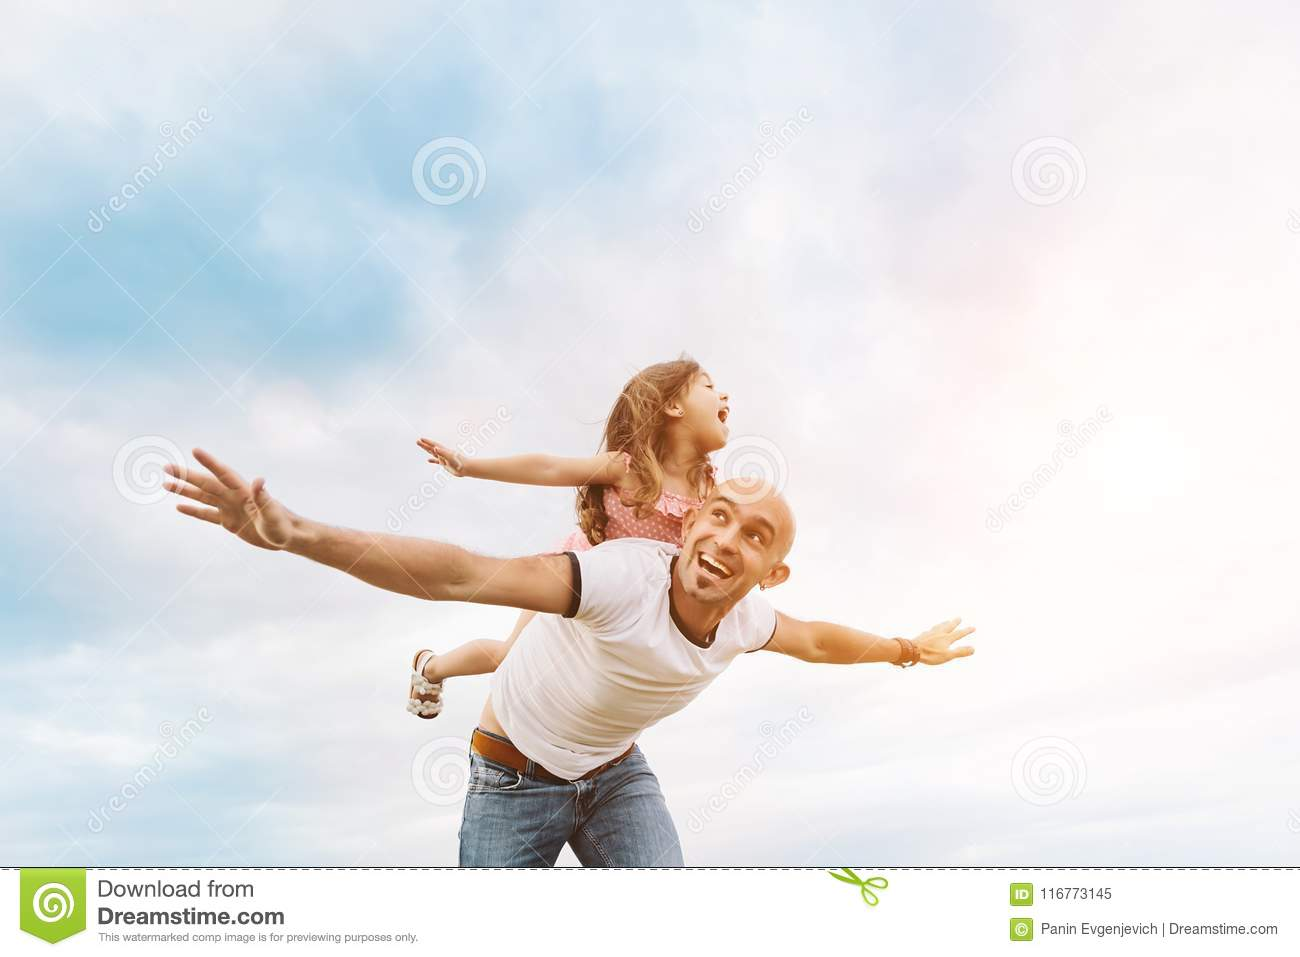 Fathrer and cute daughter playing like airplane